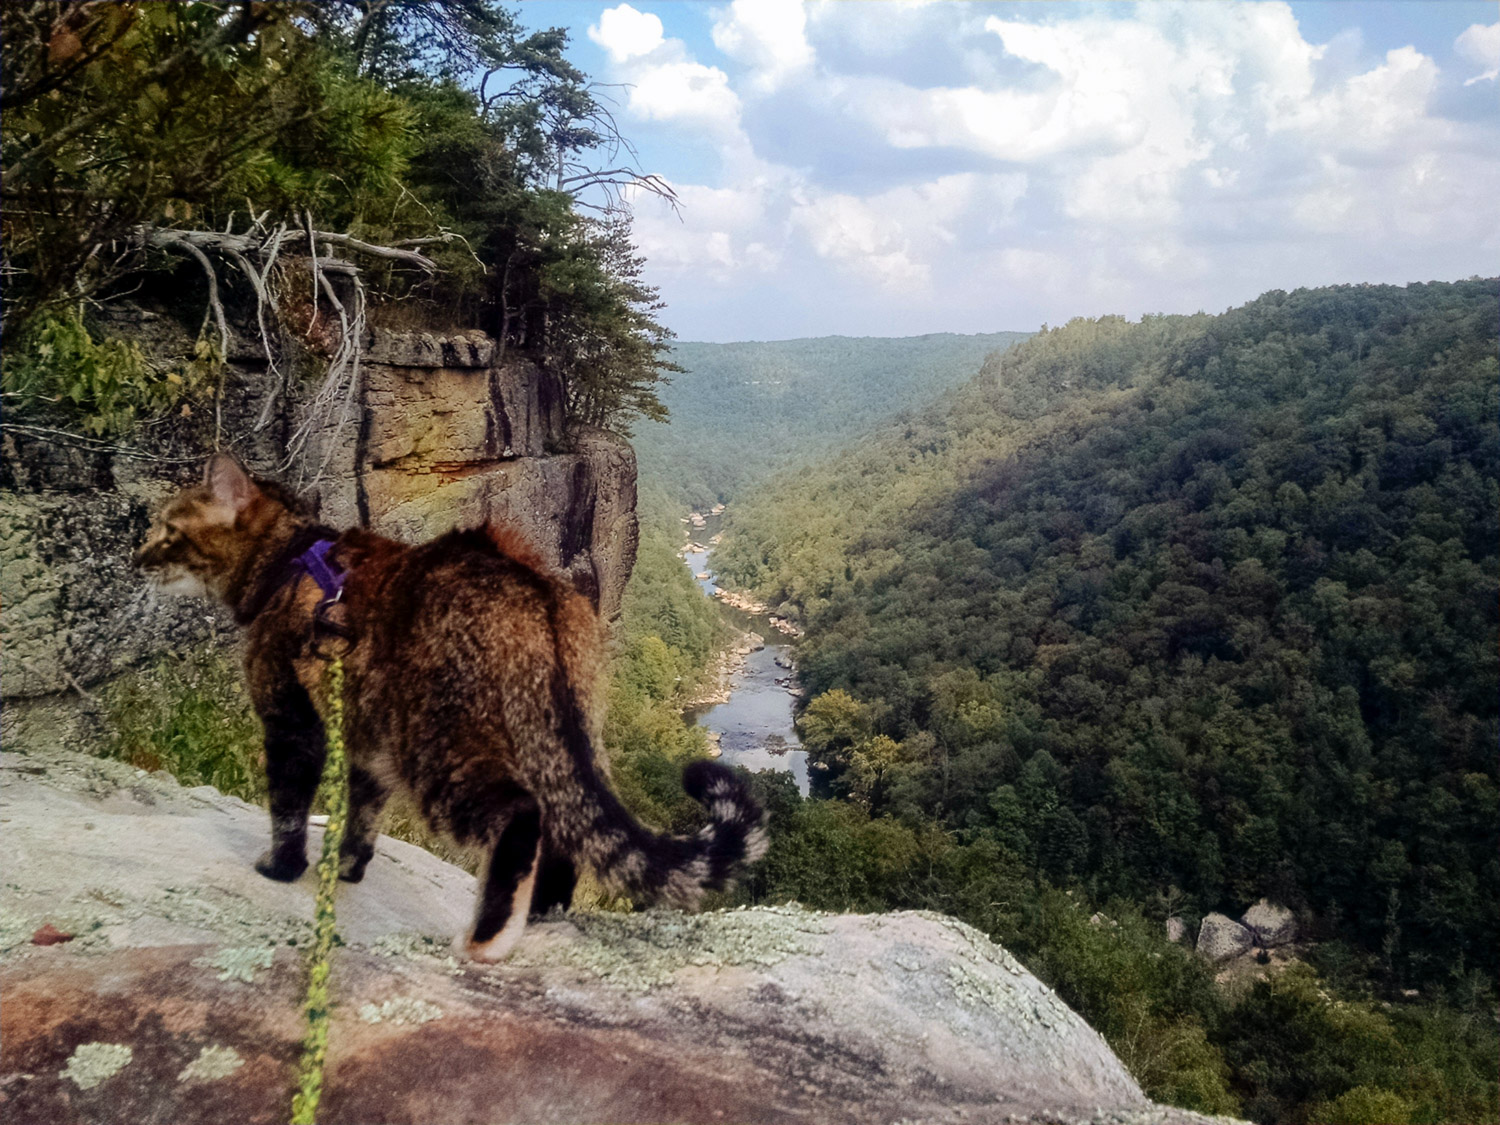 Sometimes Josie has to stop and take in the view, but her human Erin doesn't mind one bit. (Photo: Erin Dush)